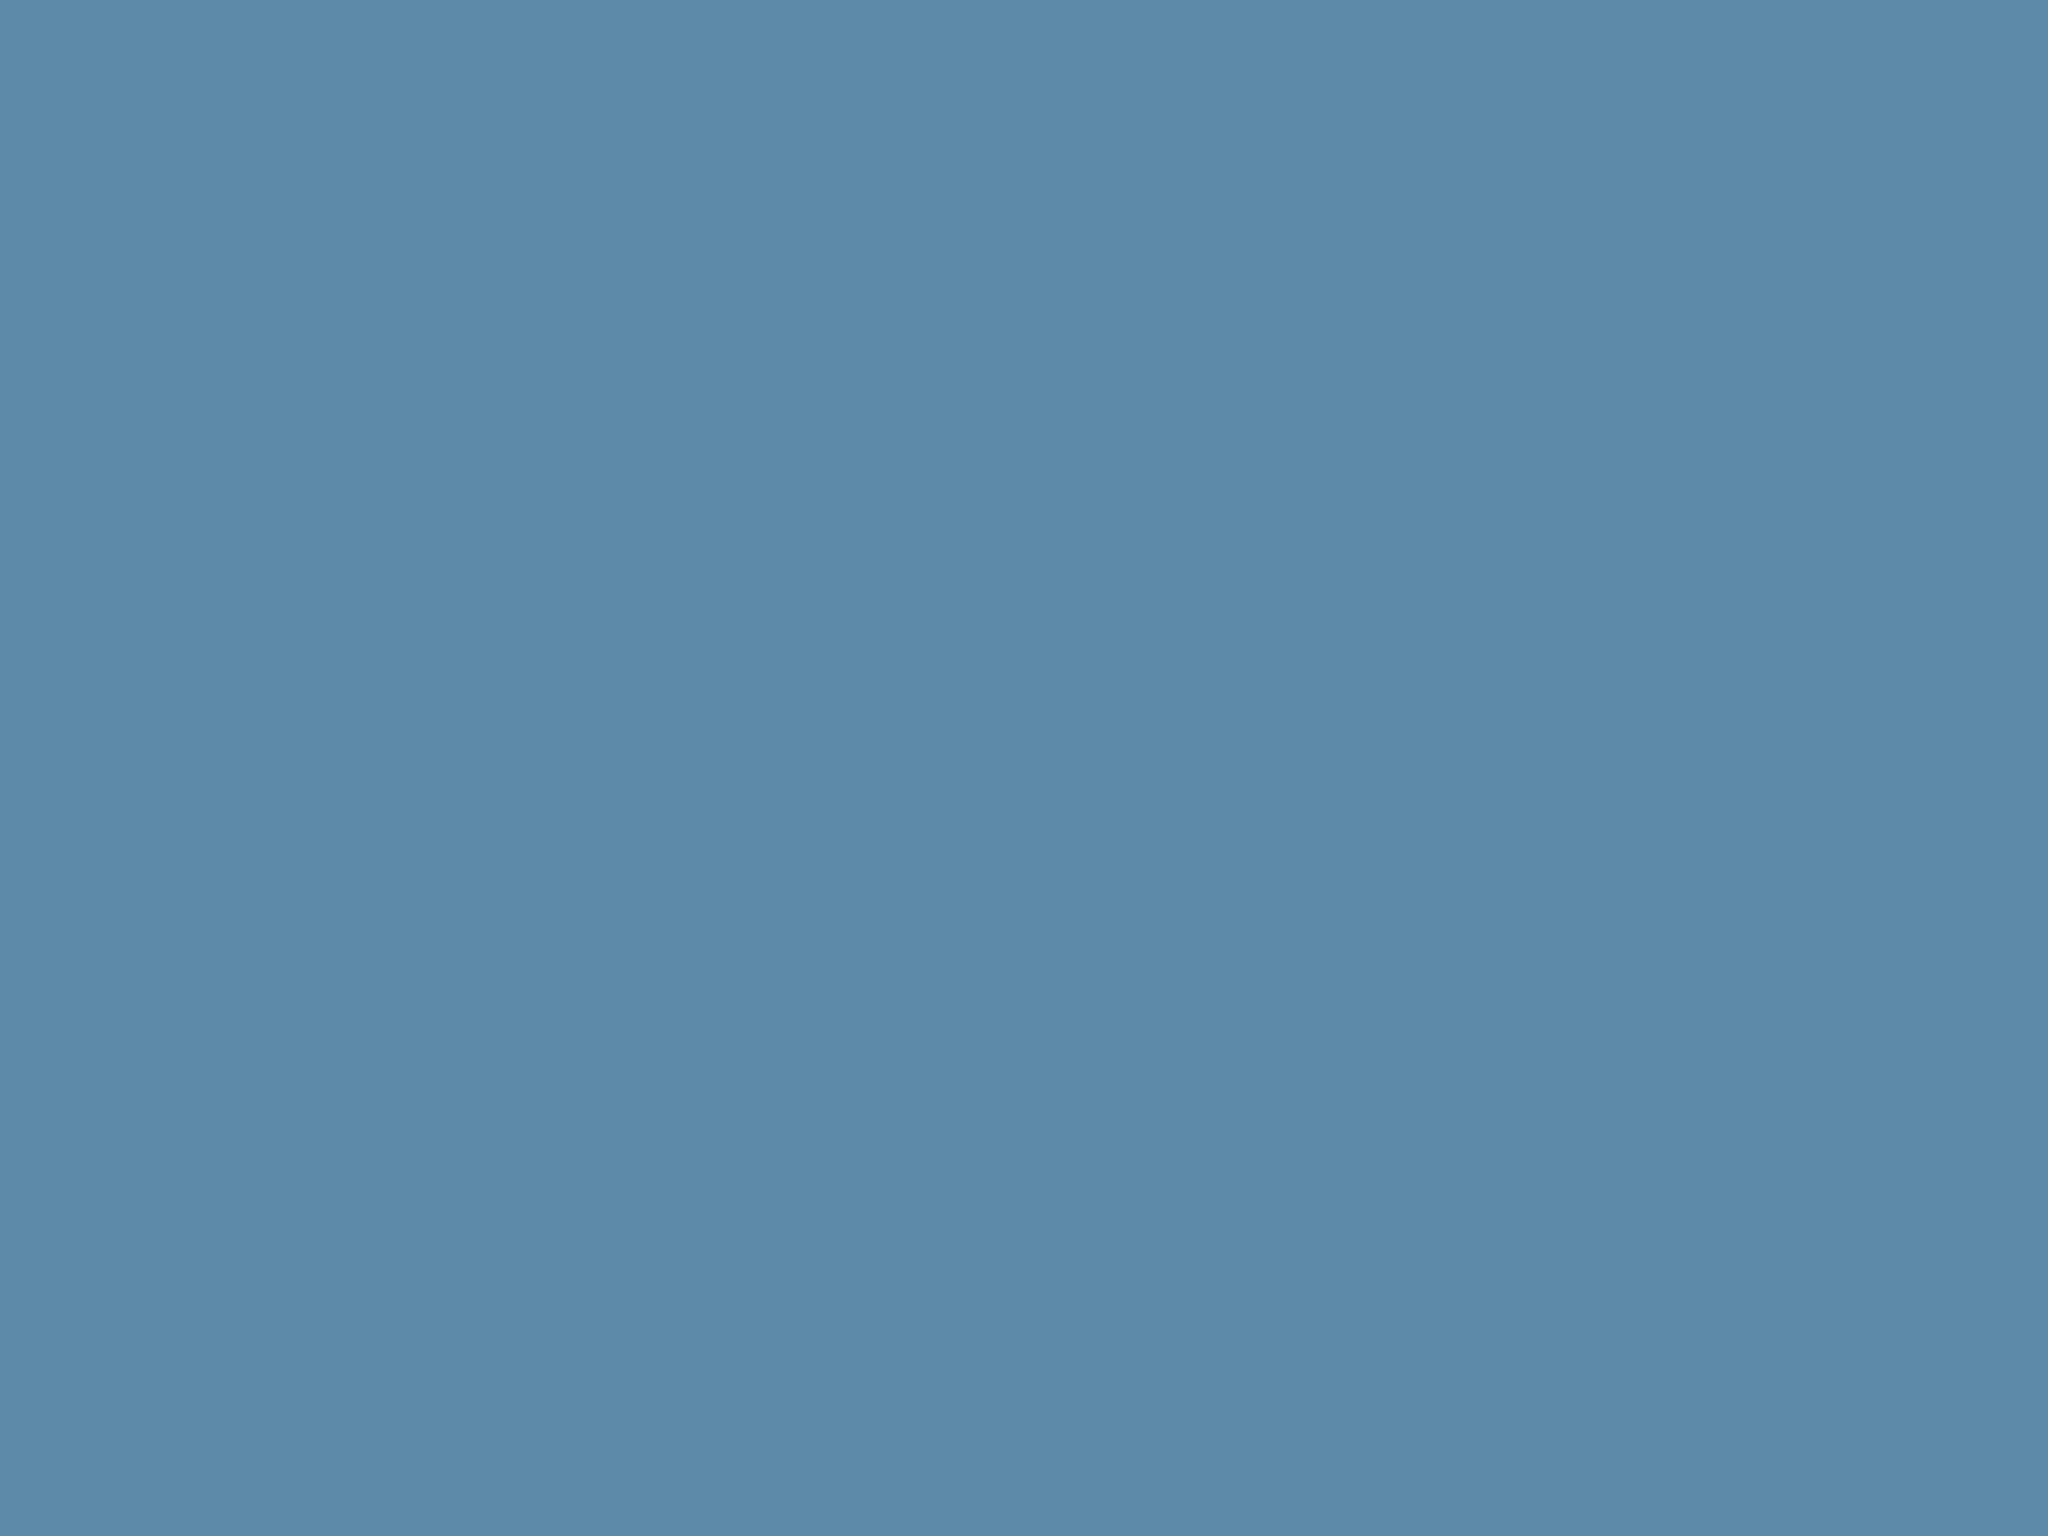 2048x1536 Air Force Blue Solid Color Background